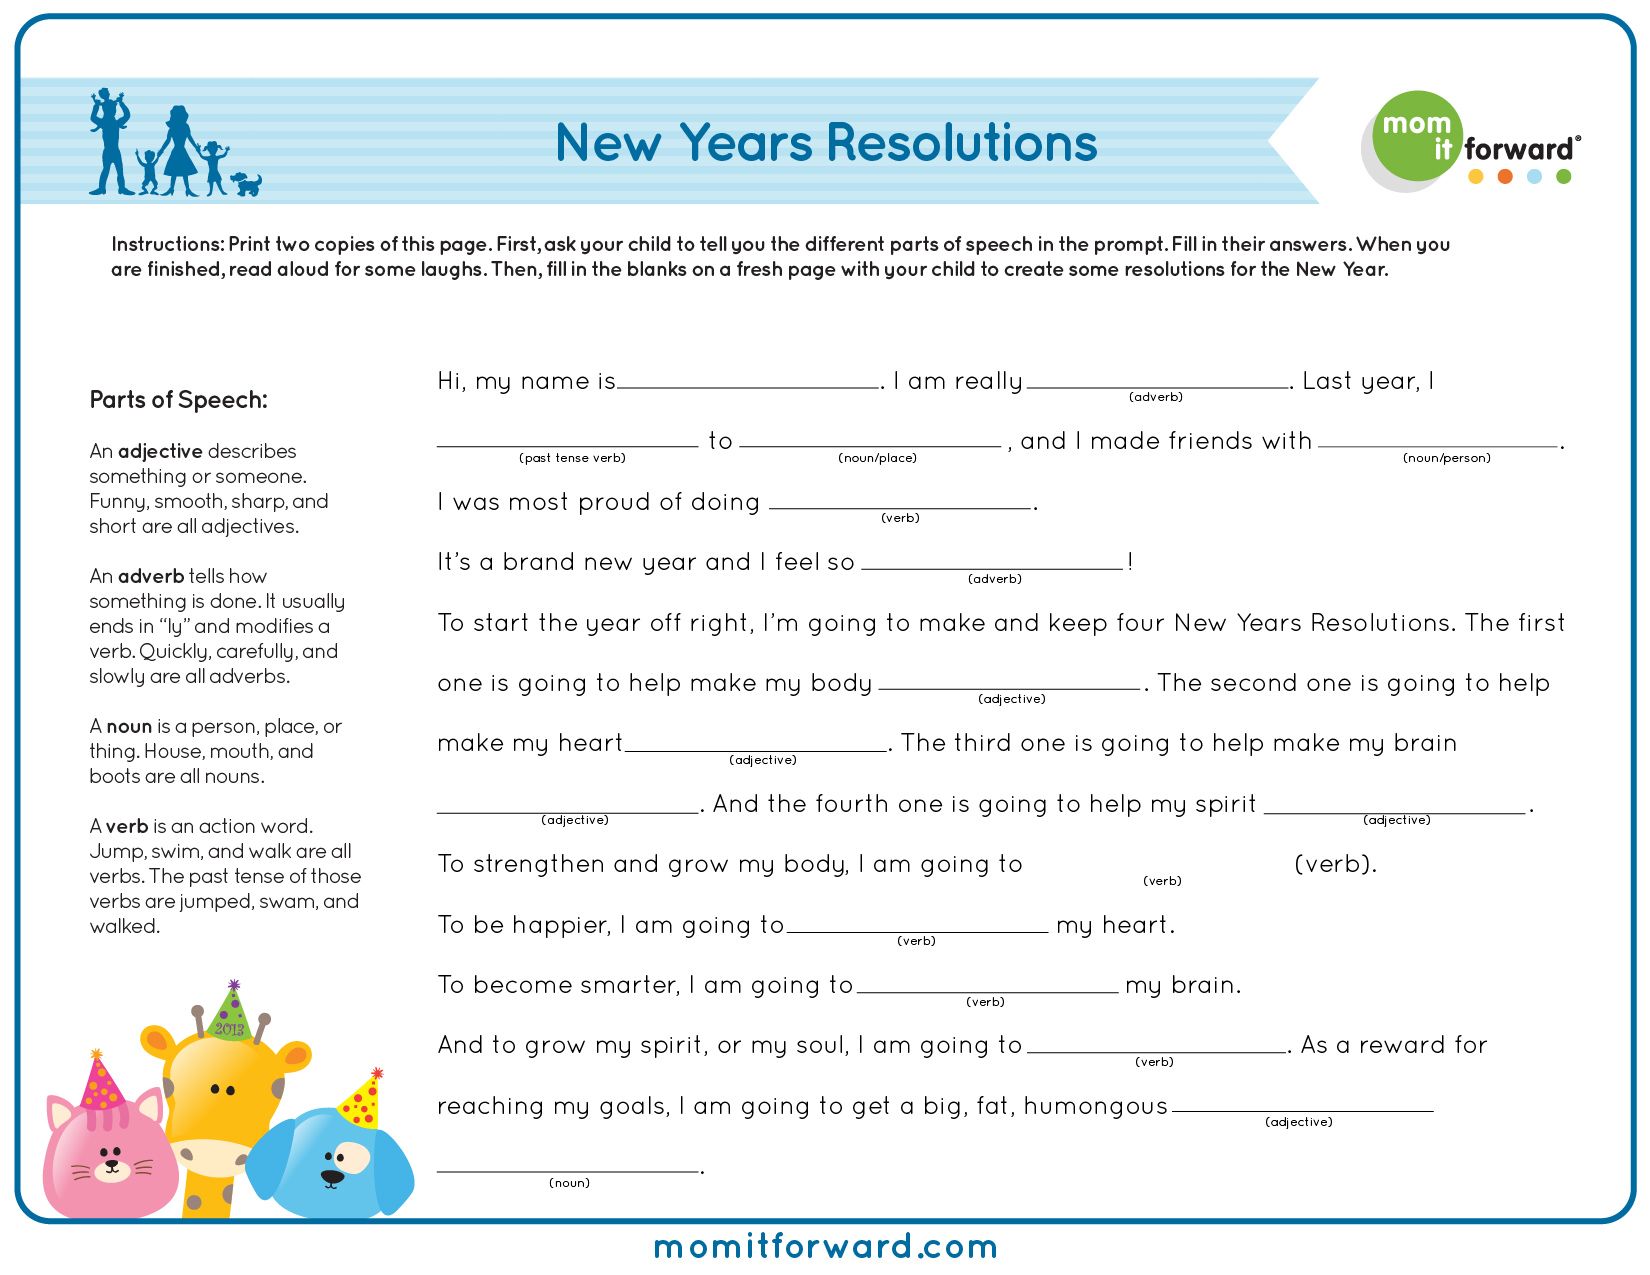 New Years Resolutions Mad Lib Printable